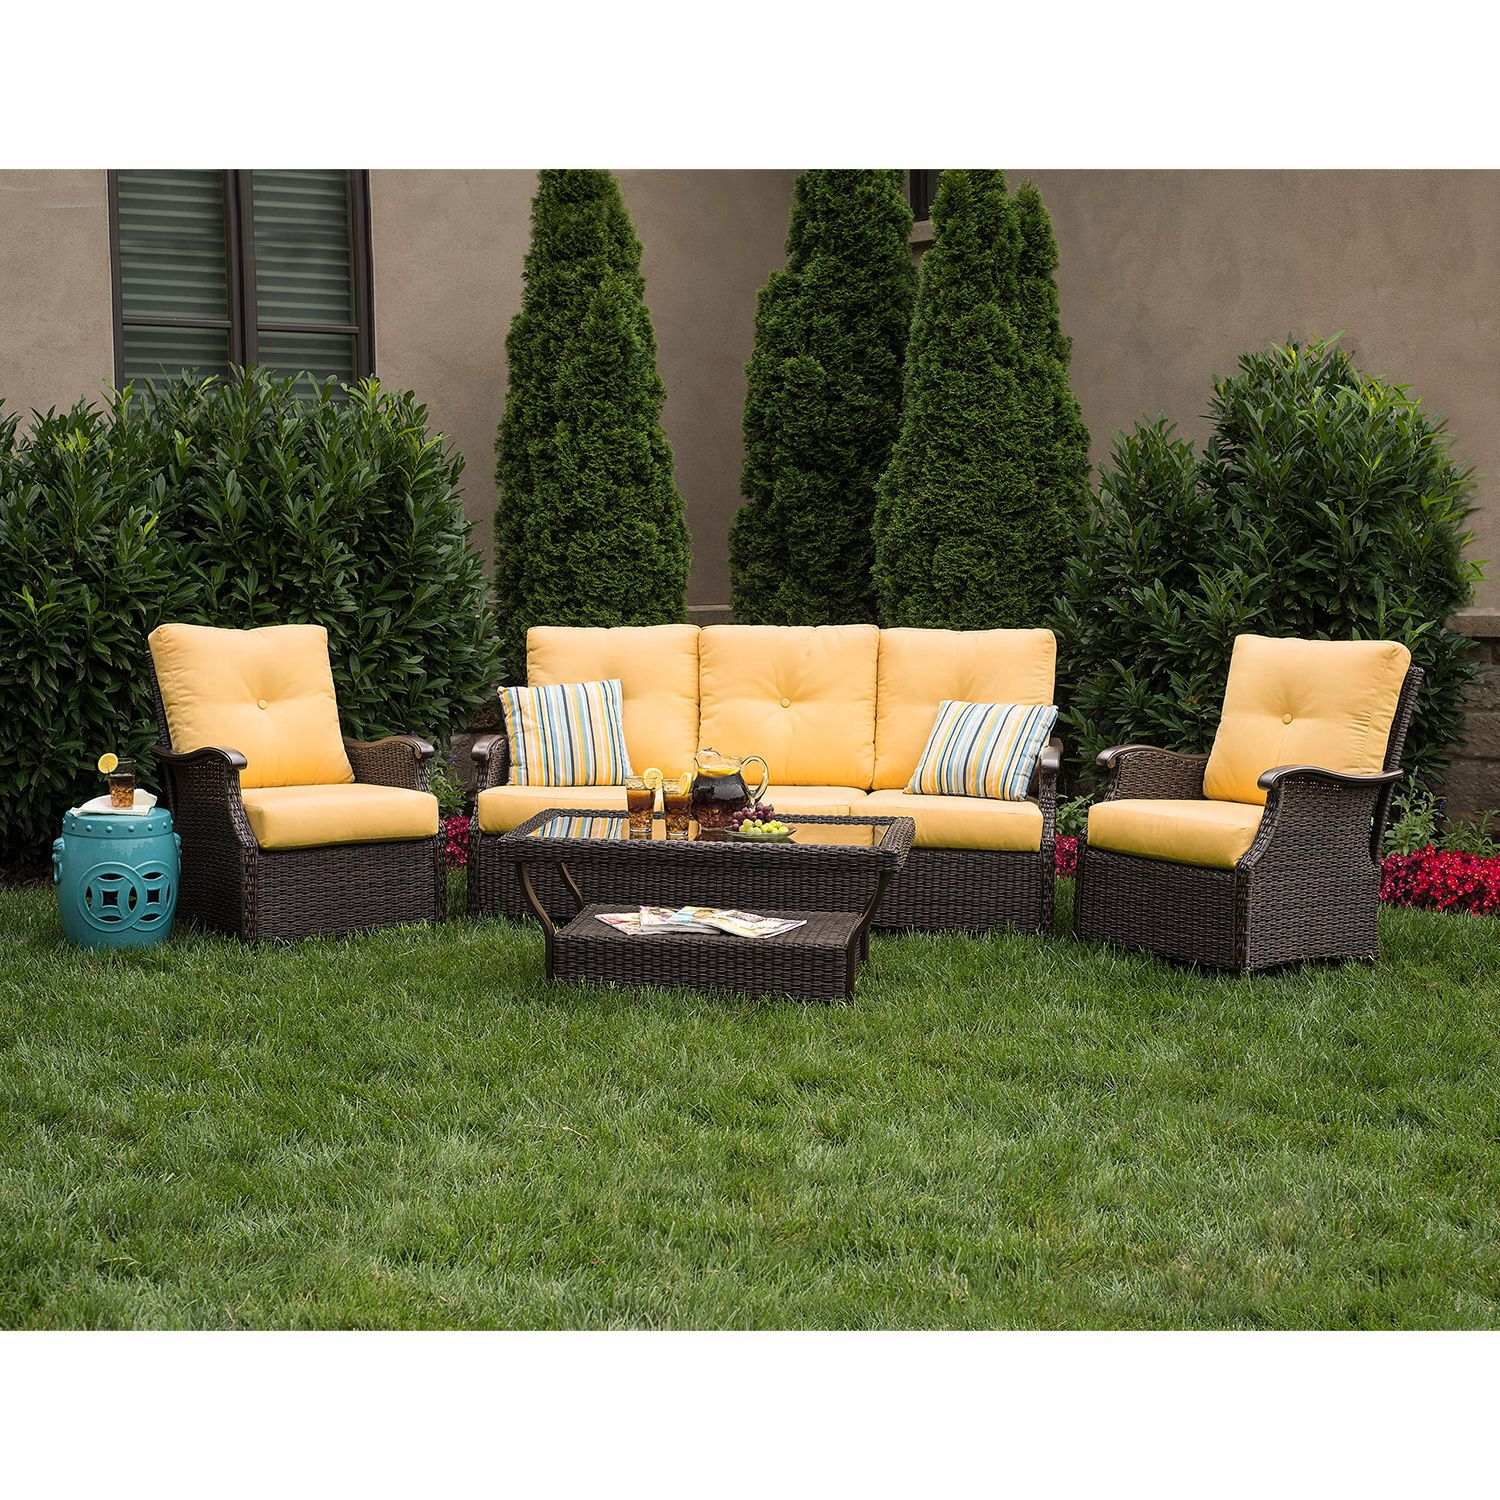 Sams Club Patio Set Patio And Outdoor Spaces Pinterest